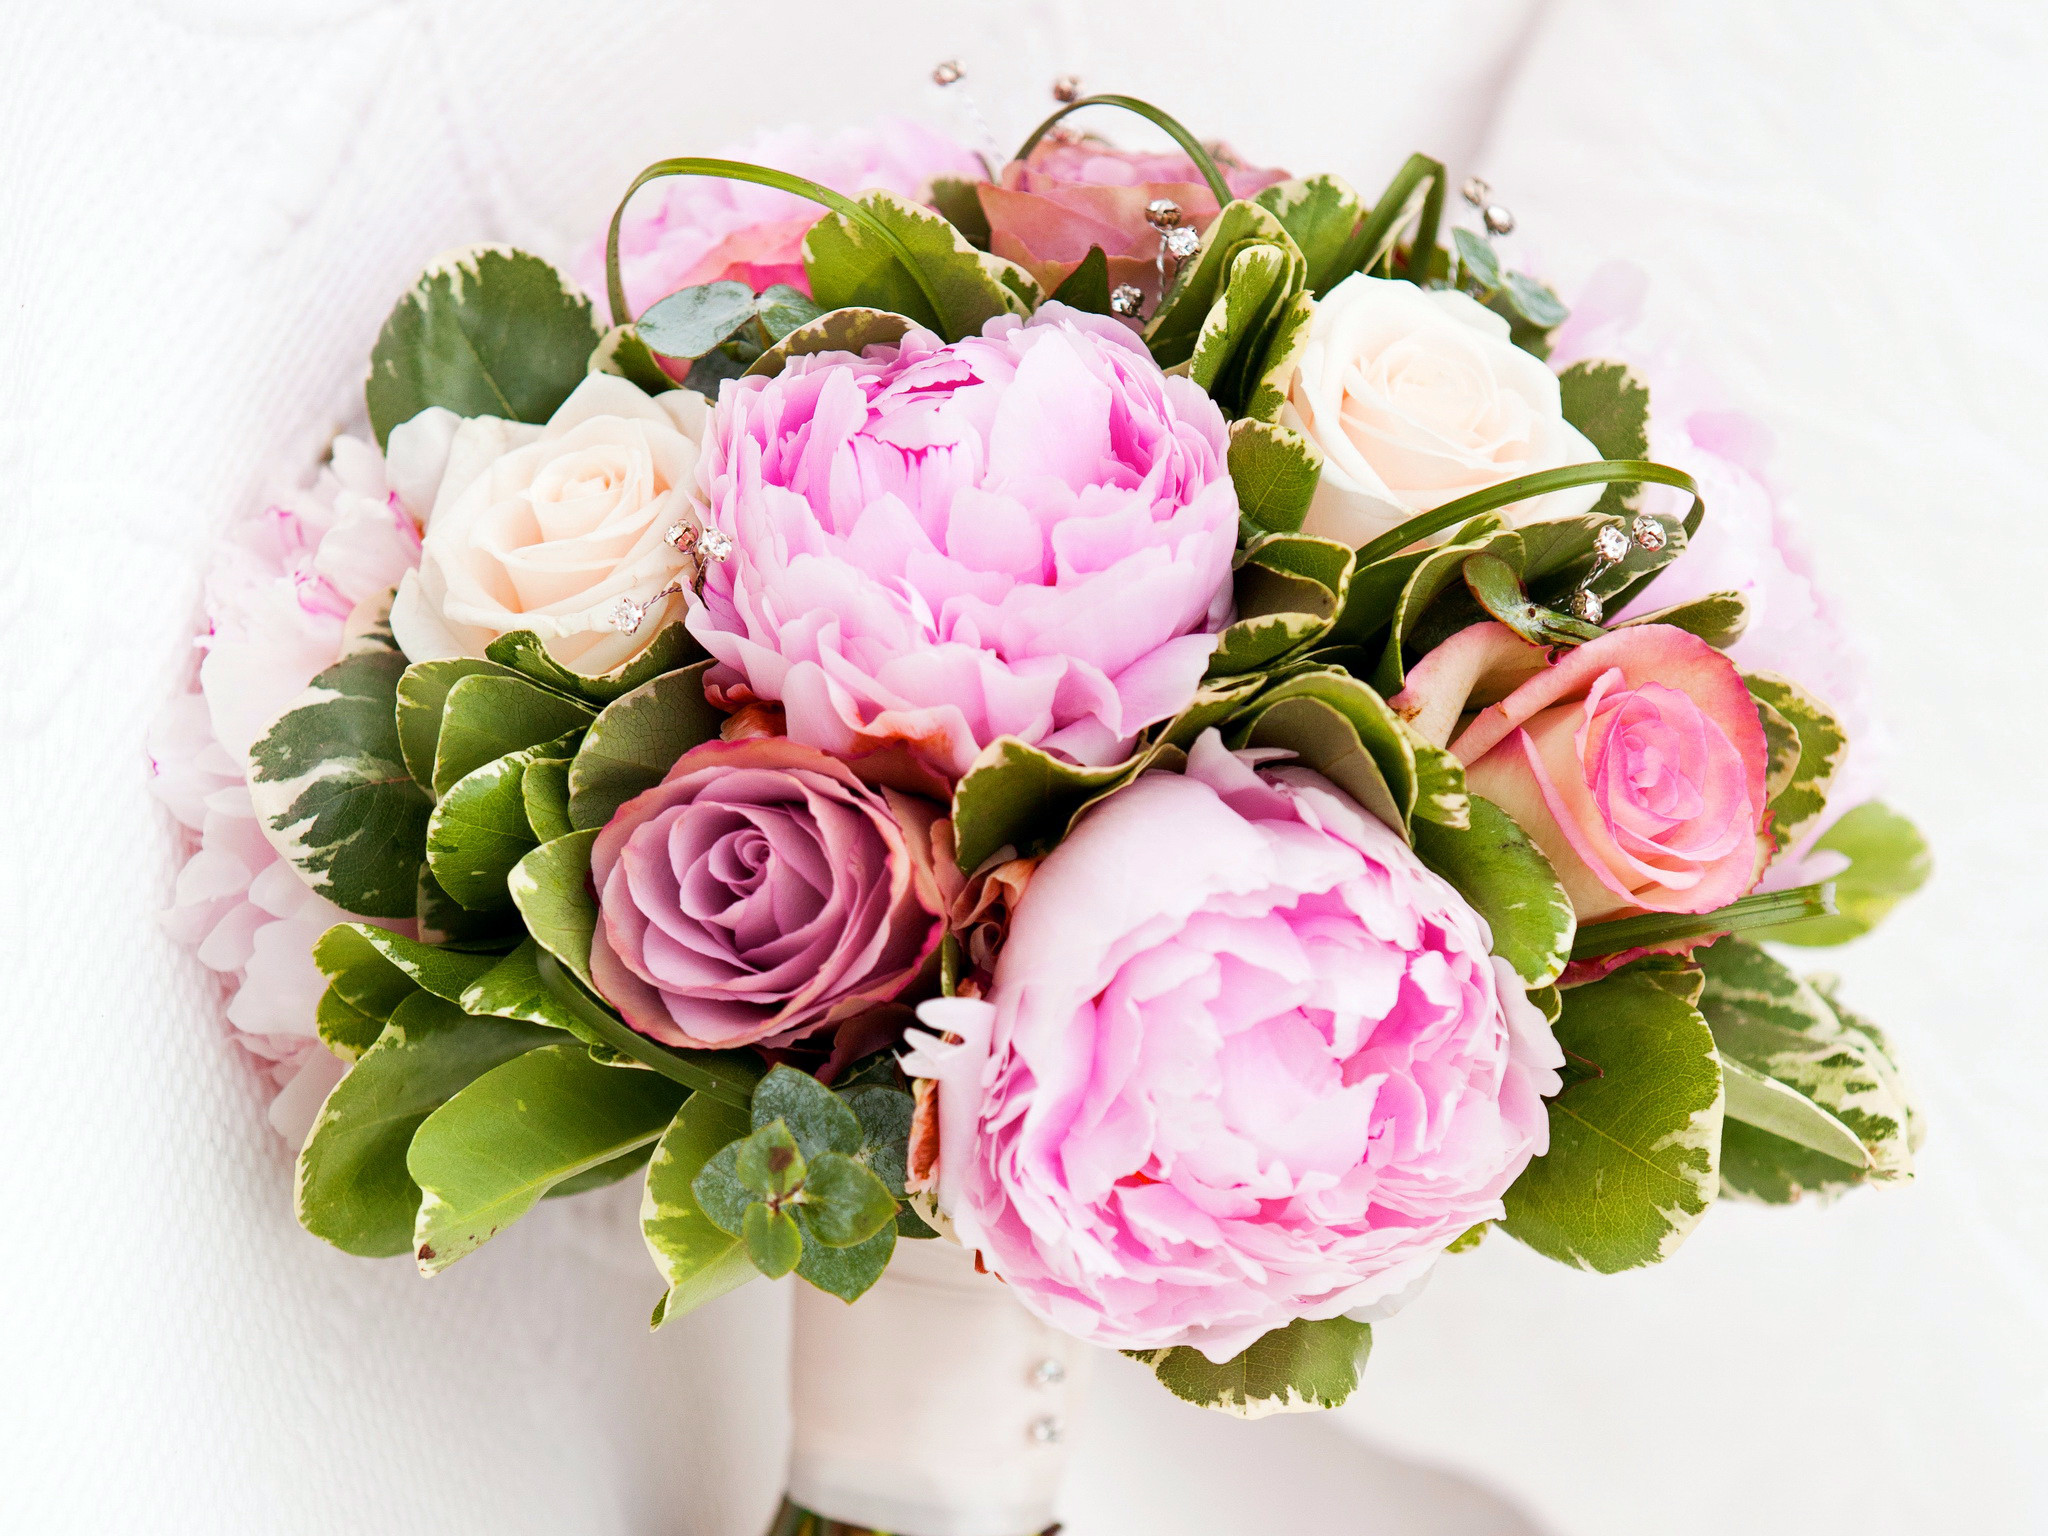 2048x1536 Bouquets Peonies Roses Flowers Wallpapers and photos